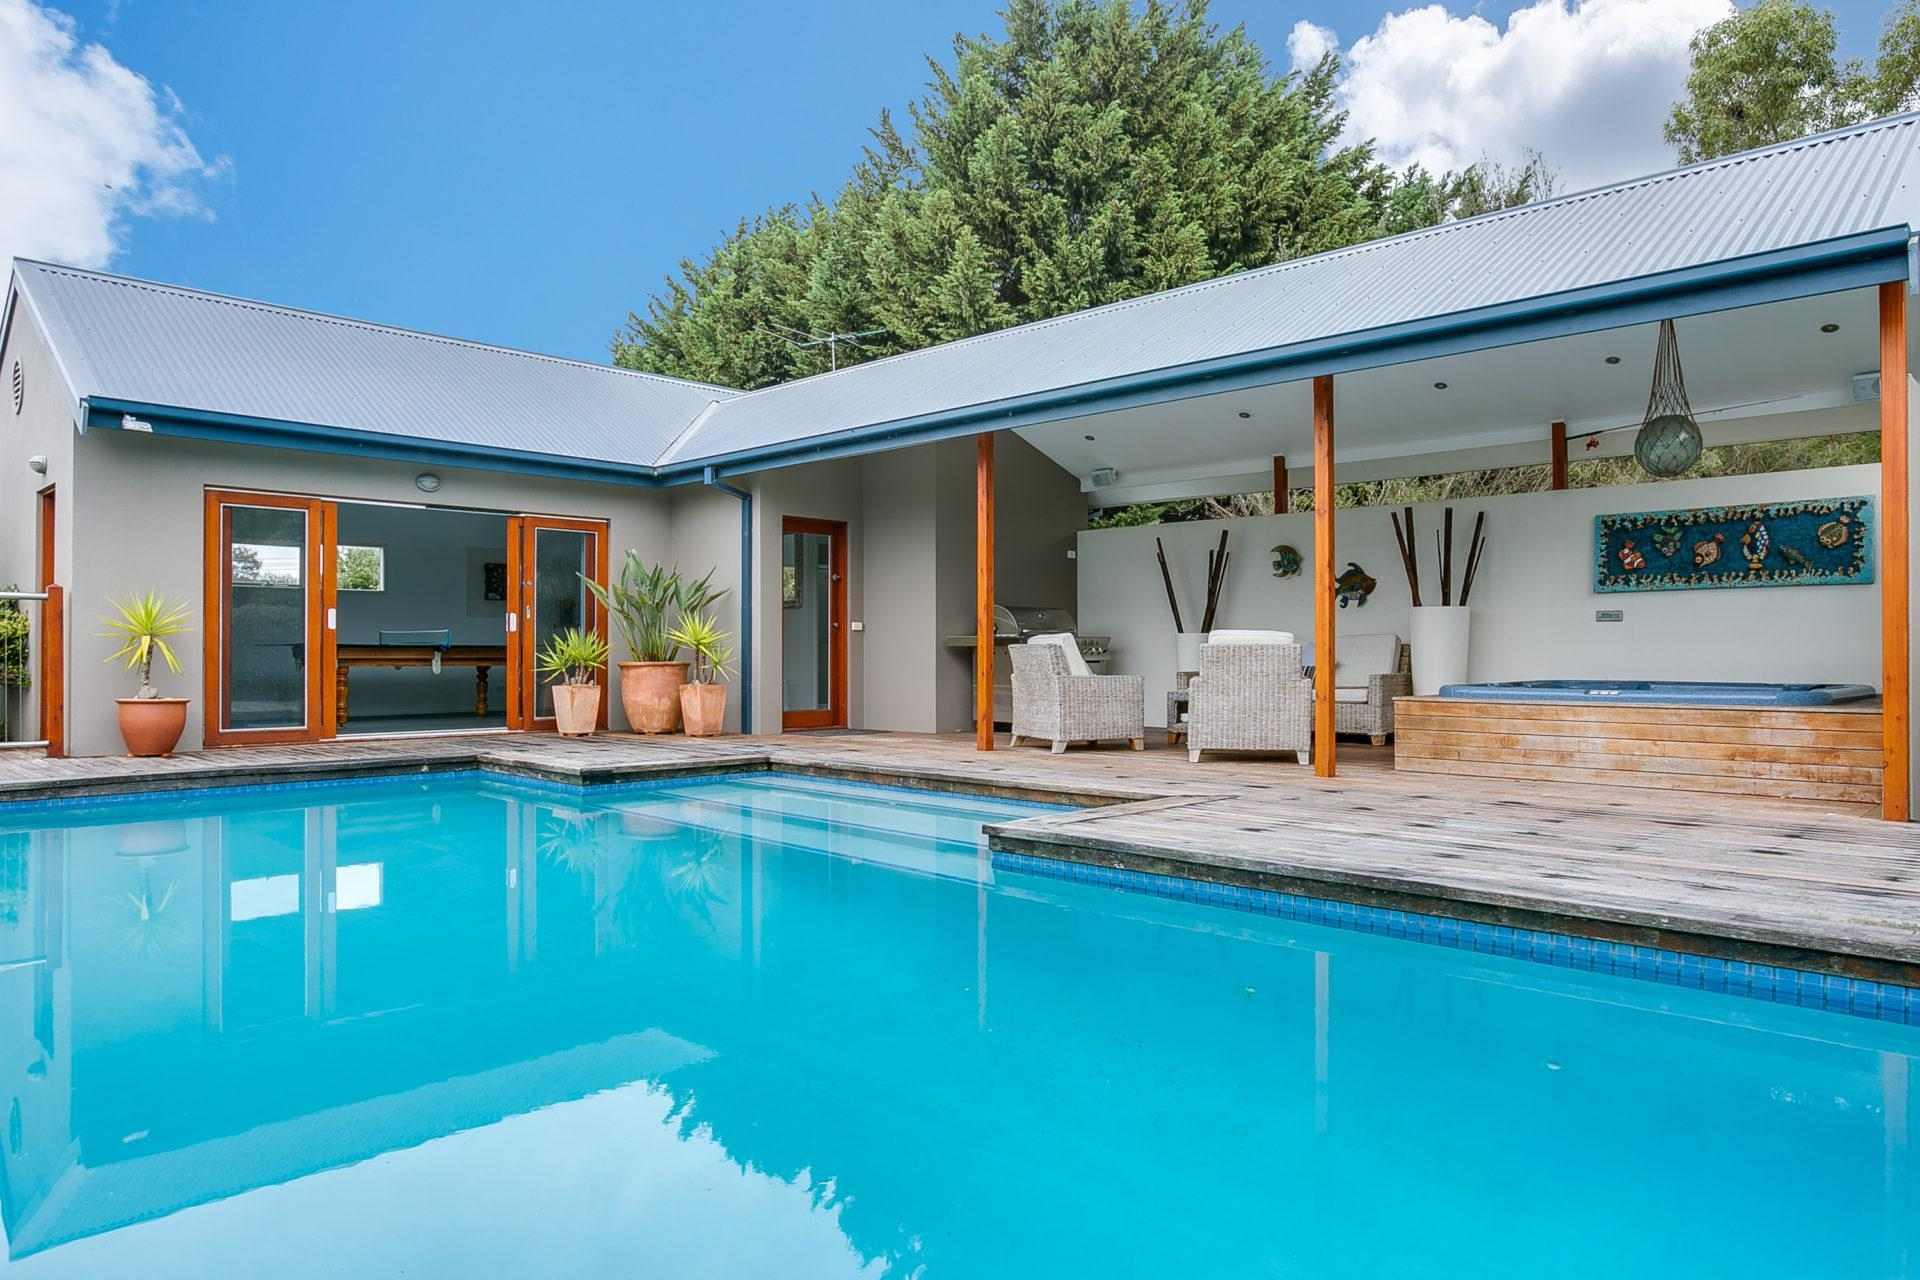 6 Bedrooms House Pool Haven On Leah